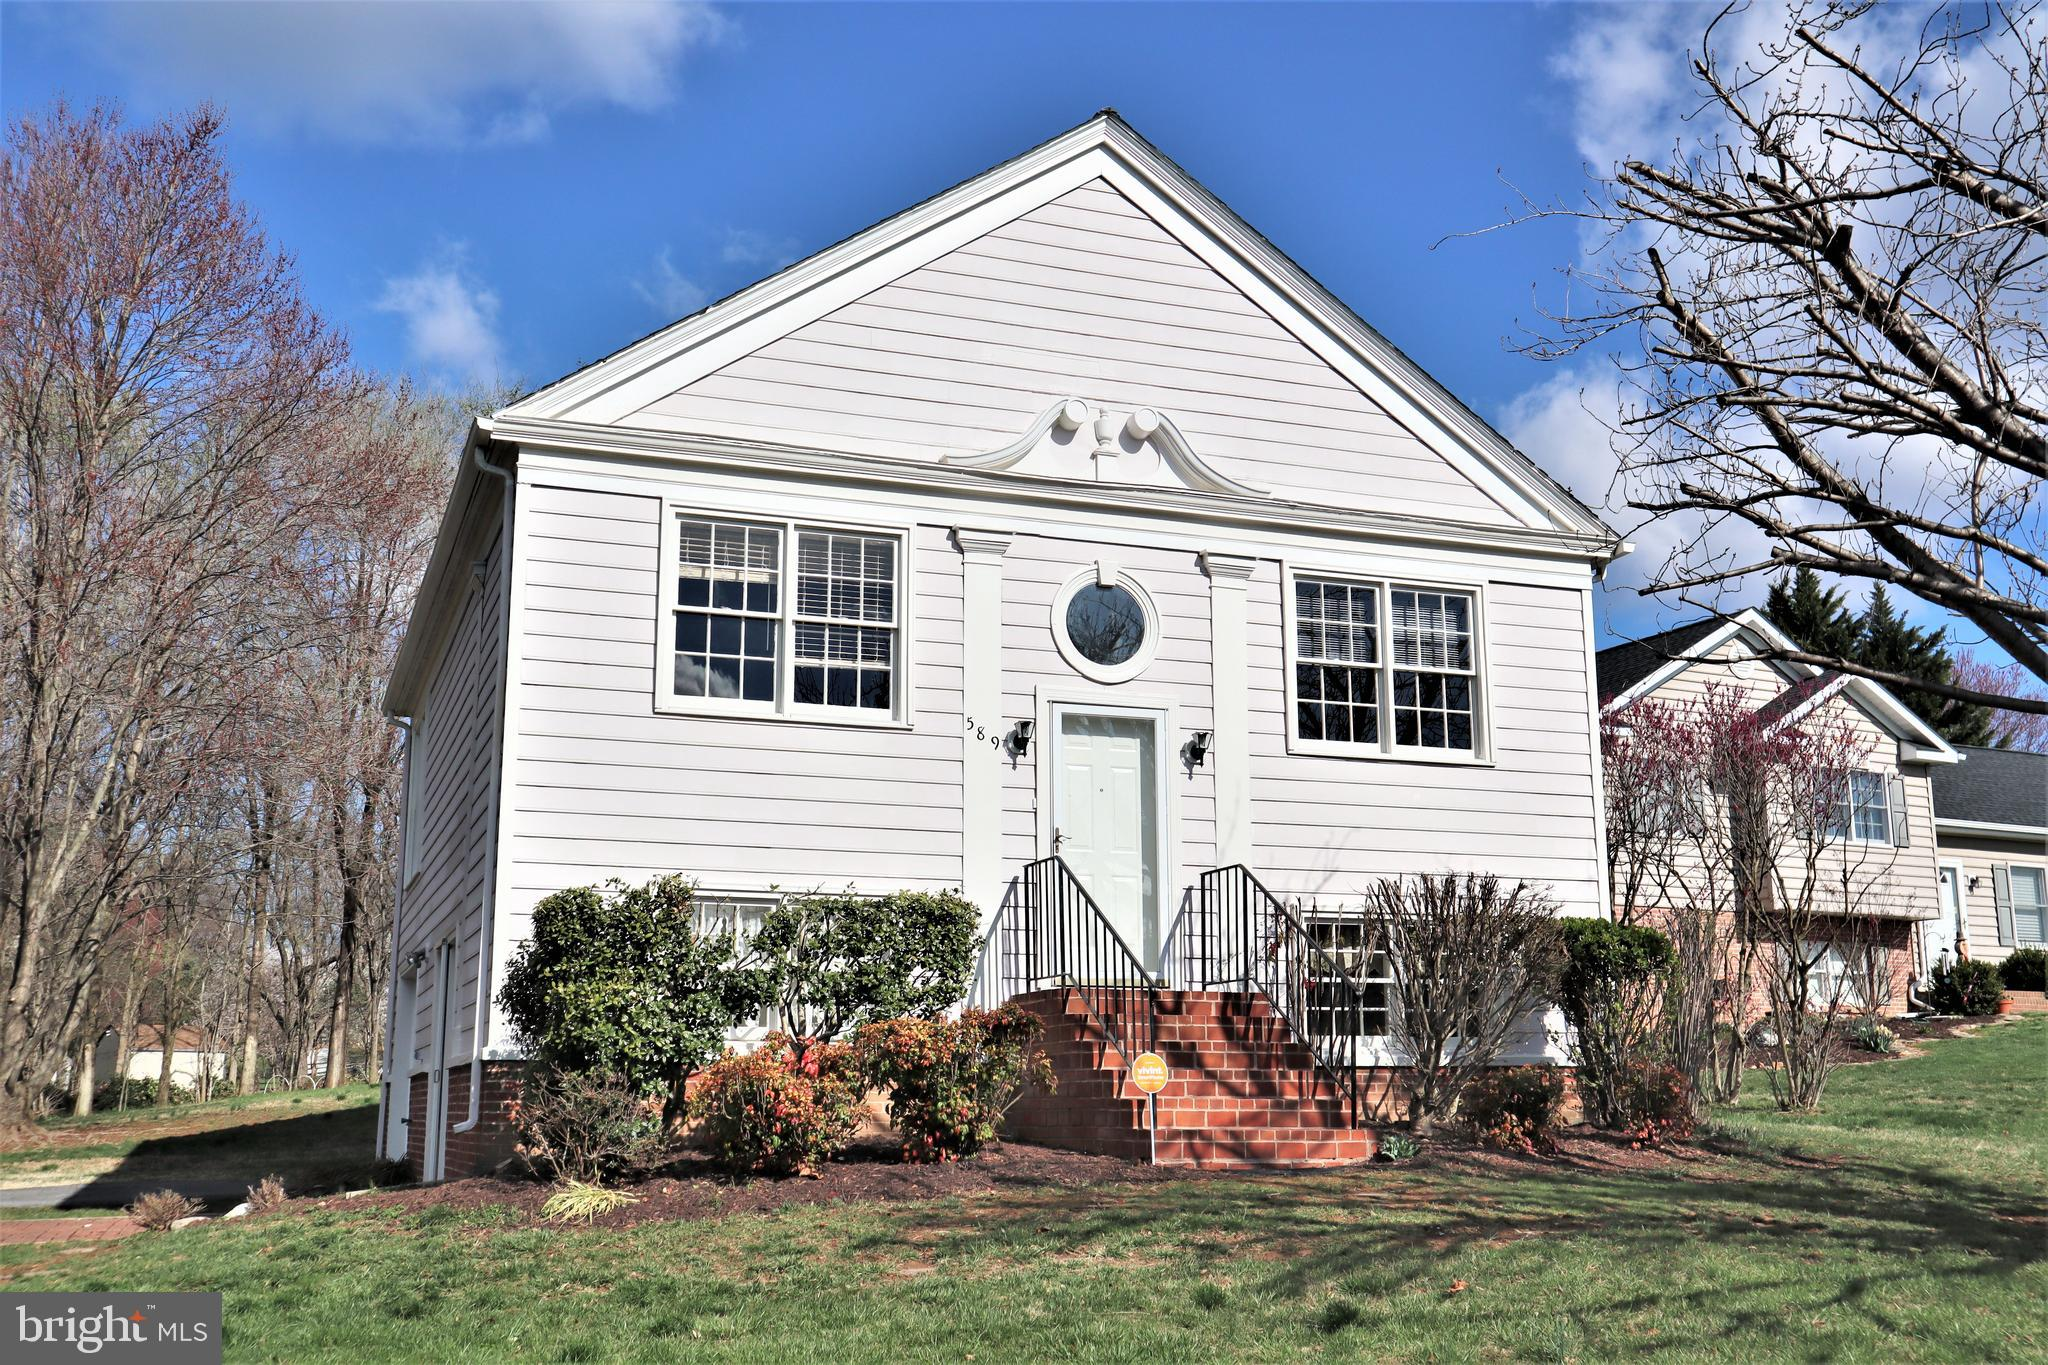 Welcome to this 3 bedroom 2 bathroom bi-level home off of Summit Point Rd! This home just got fresh